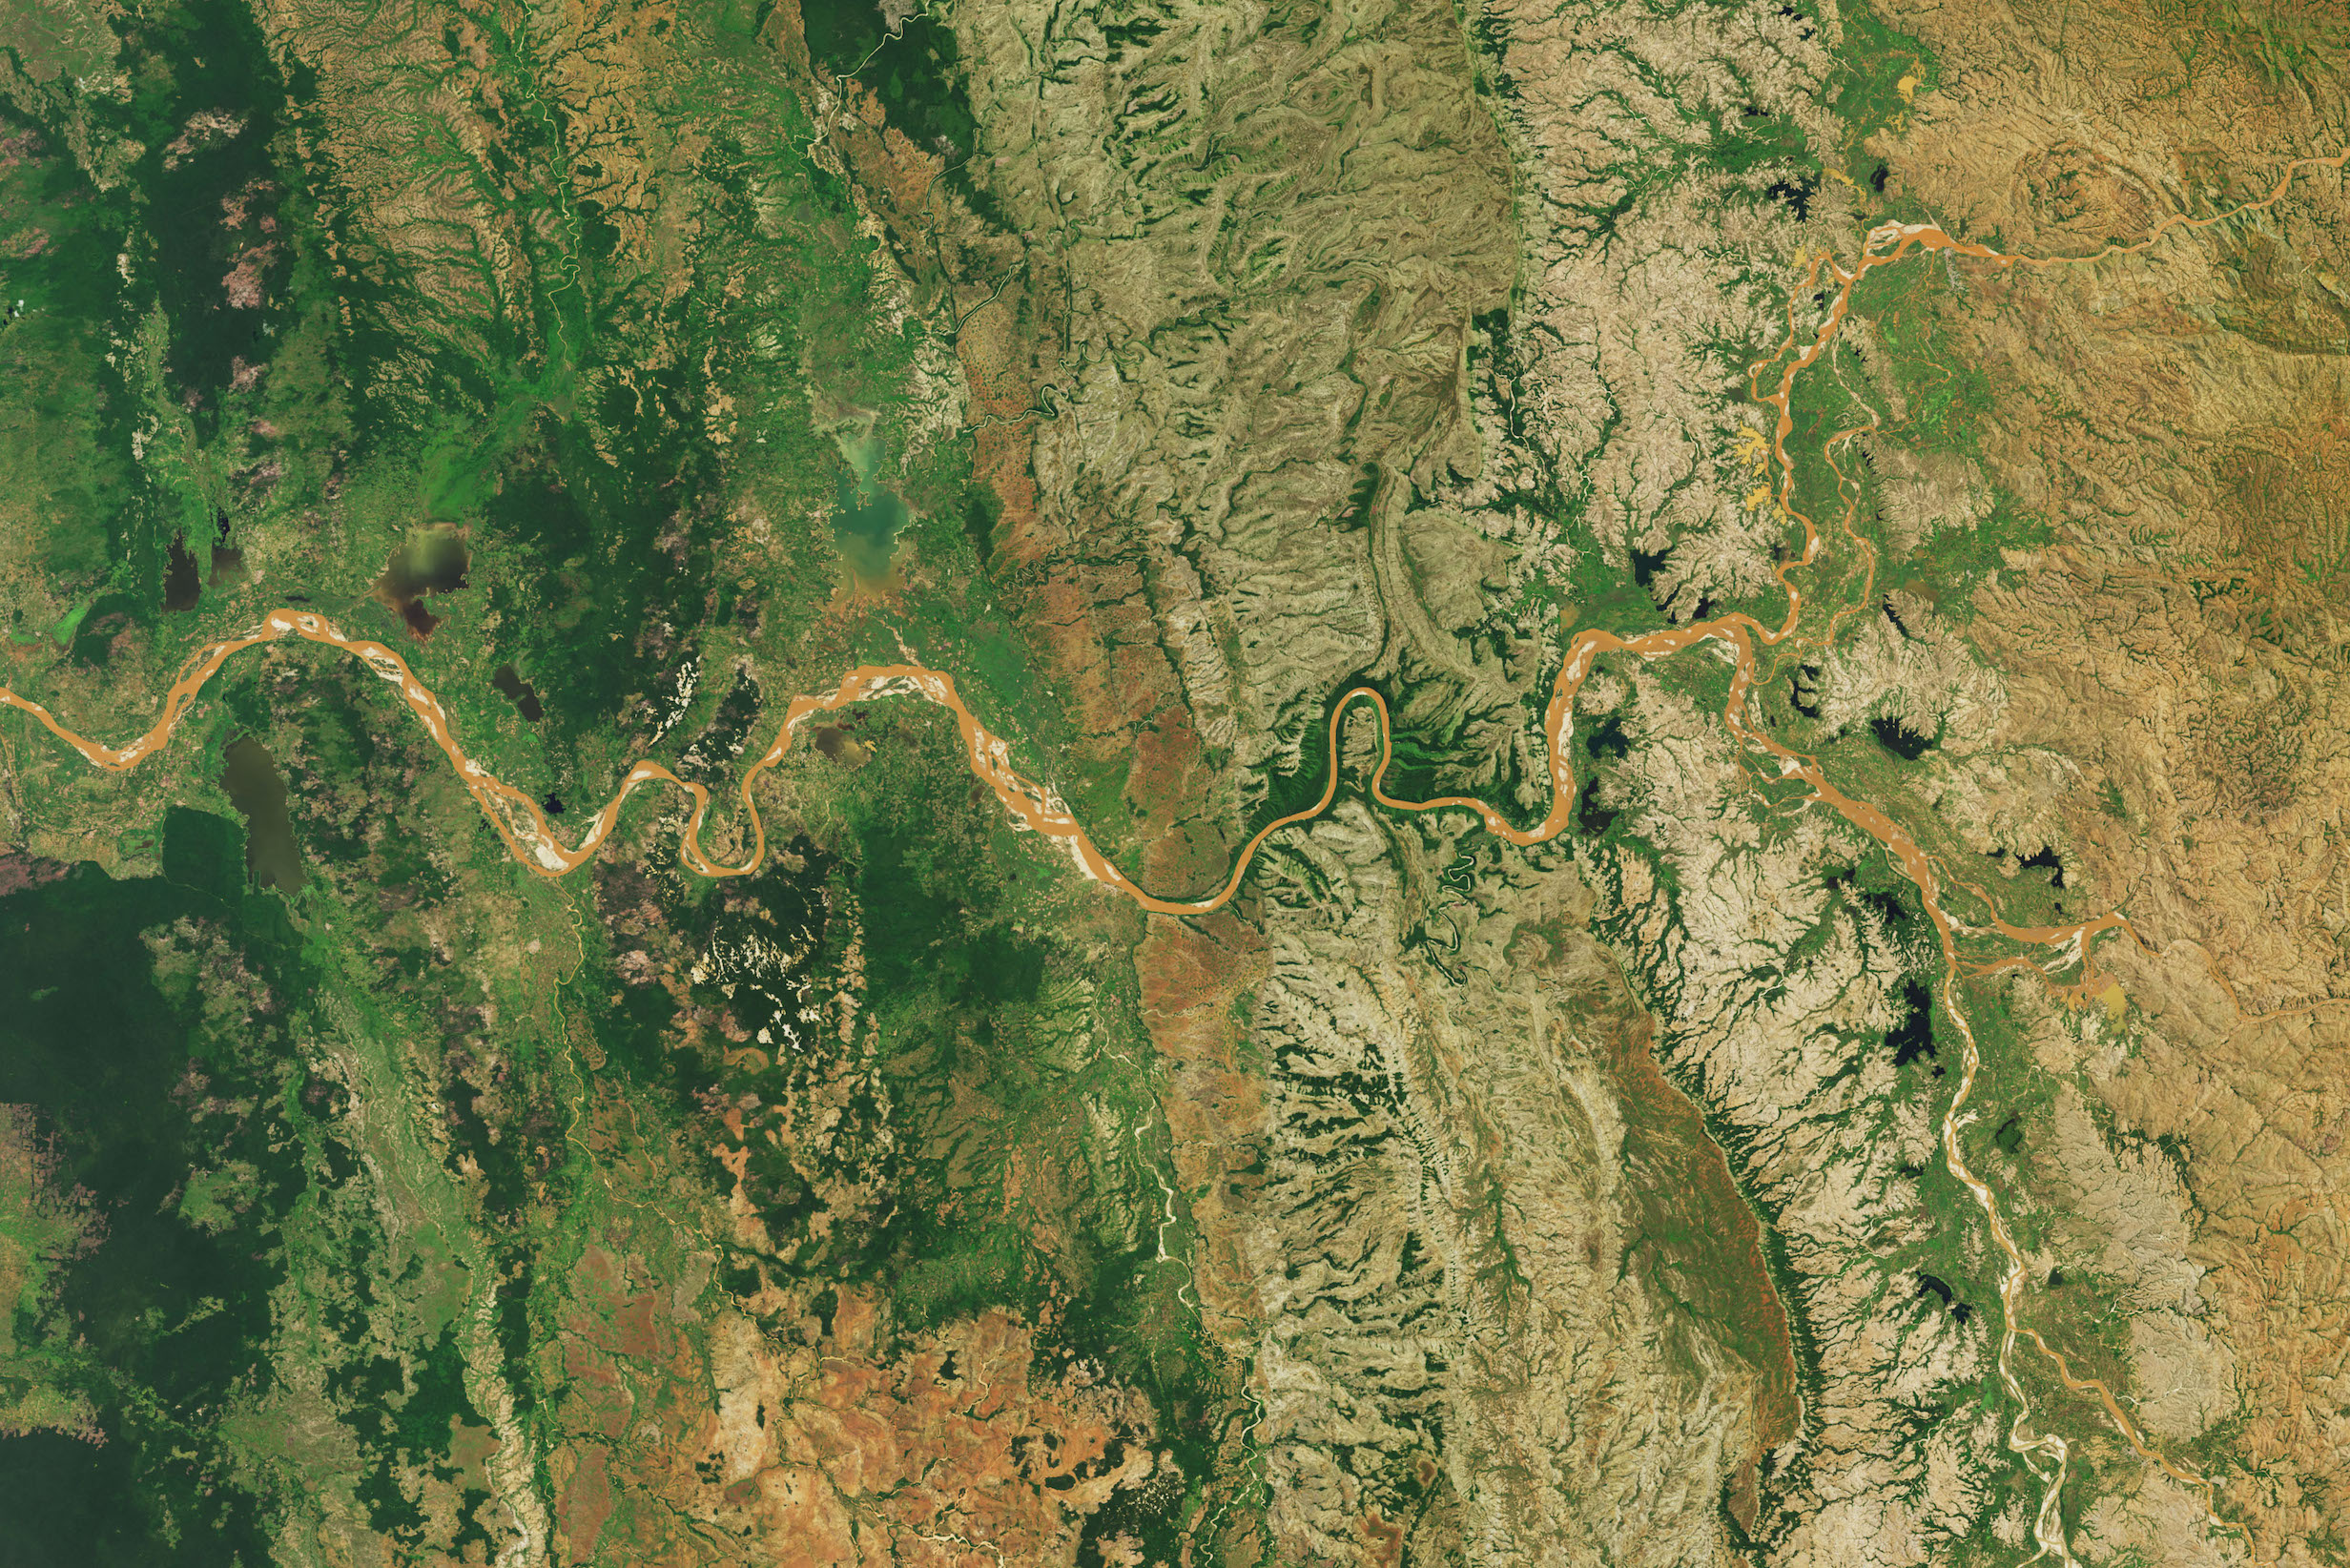 An extra muddy river in Madagascar • Earth.com on wind map of madagascar, agriculture map of madagascar, mineral map of madagascar, topographic map of madagascar, geography of madagascar, physical map of madagascar, natural resource map of madagascar,